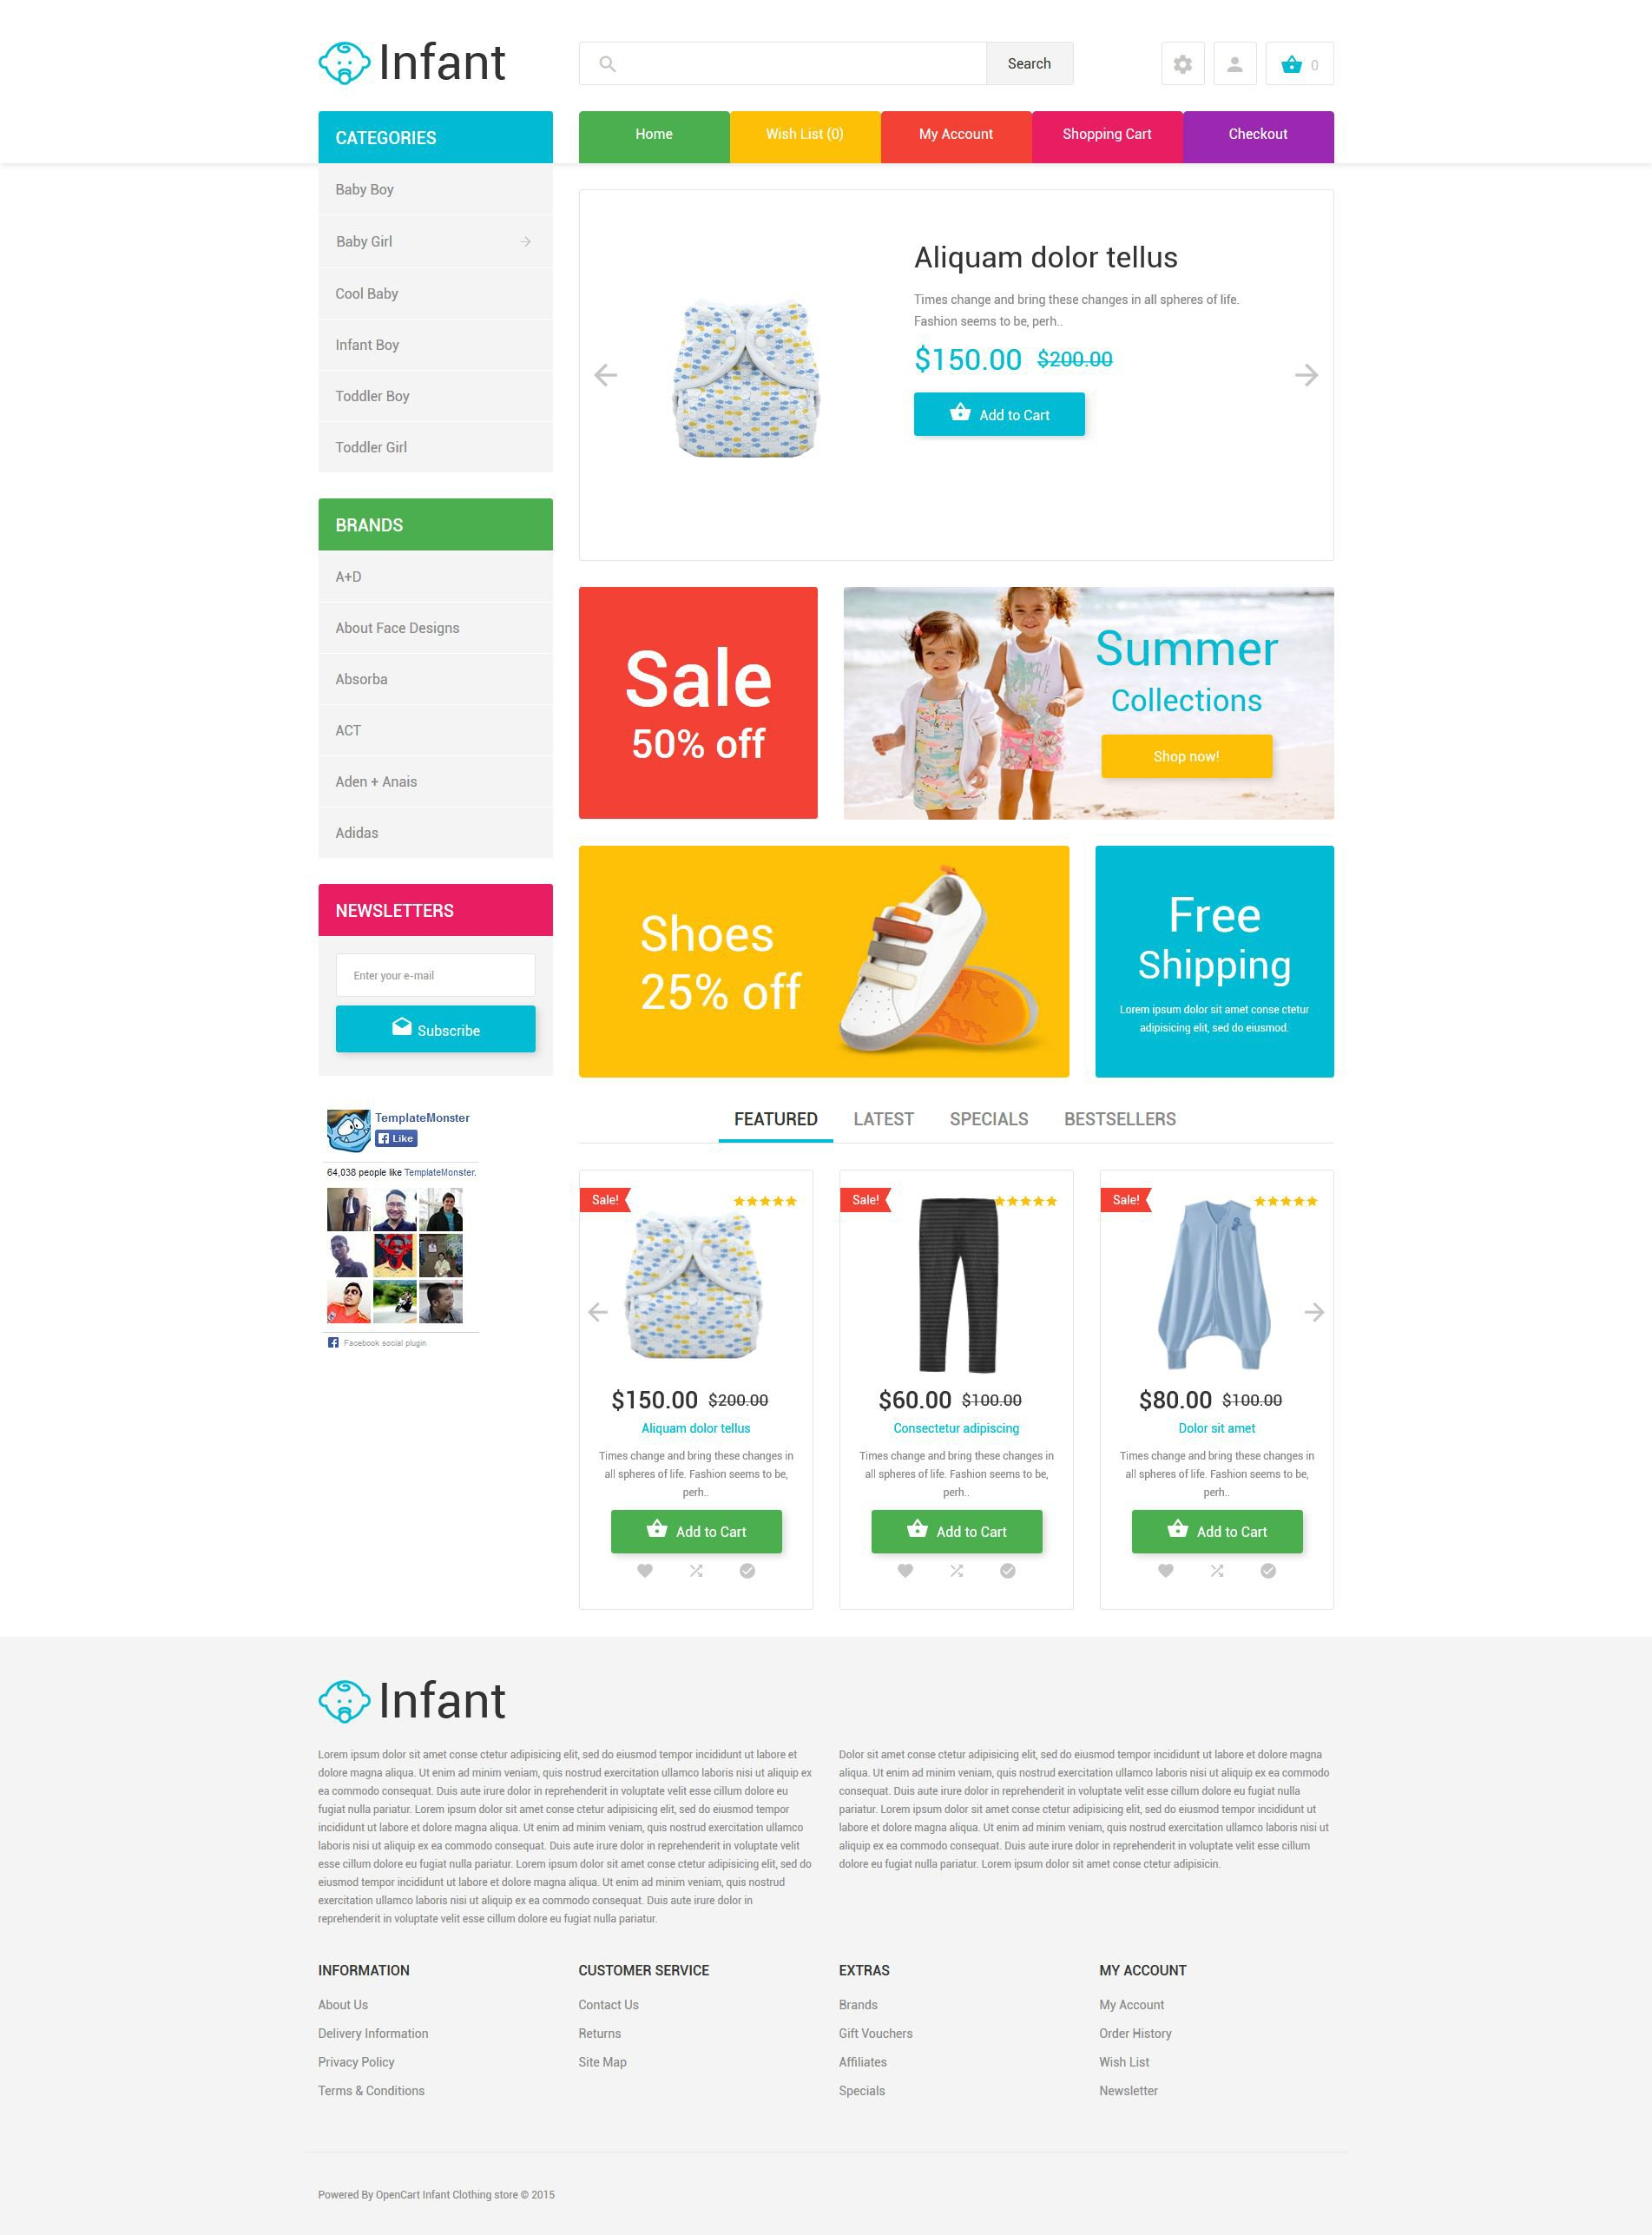 The Infant Baby Store OpenCart Design 53774, one of the best OpenCart templates of its kind (family, most popular), also known as infant baby store OpenCart template, kids OpenCart template, toys store OpenCart template, baby online shop OpenCart template, gift OpenCart template, toy OpenCart template, exclusive OpenCart template, children OpenCart template, animals OpenCart template, wildlife OpenCart template, party OpenCart template, favors OpenCart template, cool OpenCart template, vehicle OpenCart template, outdoor OpenCart template, developmental OpenCart template, car OpenCart template, doll OpenCart template, game OpenCart template, dog OpenCart template, teddy OpenCart template, bear OpenCart template, roadster OpenCart template, frog OpenCart template, mover OpenCart template, table OpenCart template, ball OpenCart template, puzzle OpenCart template, bus OpenCart template, plush OpenCart template, battleship OpenCart template, air OpenCart template, chair OpenCart template, presents OpenCart template, snowmen OpenCart template, delivery and related with infant baby store, kids, toys store, baby online shop, gift, toy, exclusive, children, animals, wildlife, party, favors, cool, vehicle, outdoor, developmental, car, doll, game, dog, teddy, bear, roadster, frog, mover, table, ball, puzzle, bus, plush, battleship, air, chair, presents, snowmen, delivery, etc.